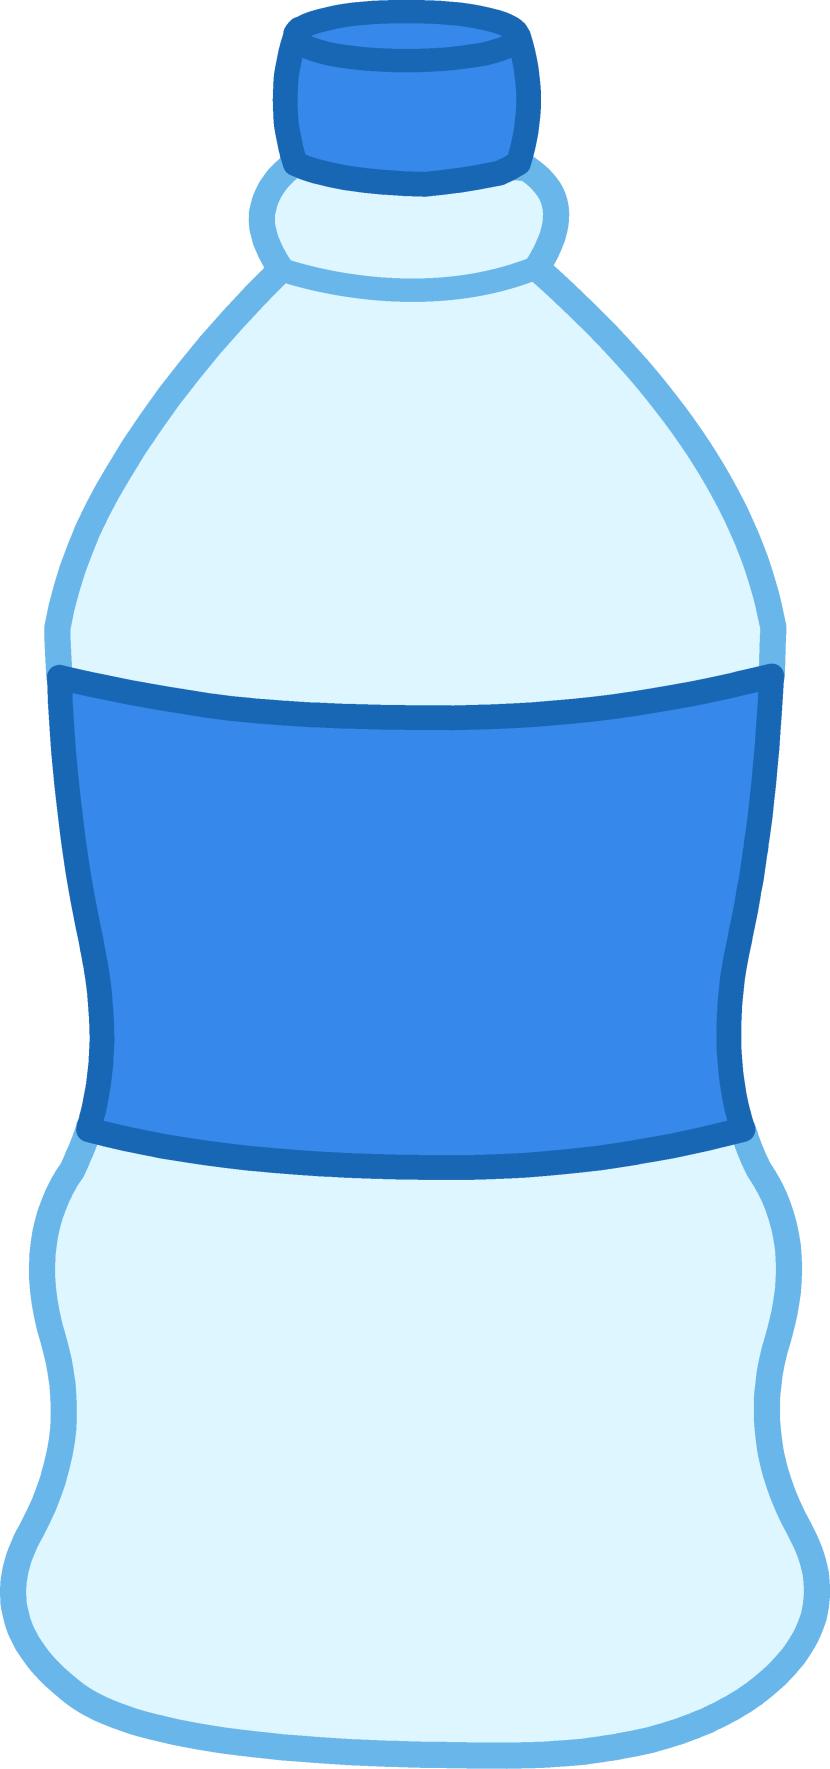 23320 Water free clipart.